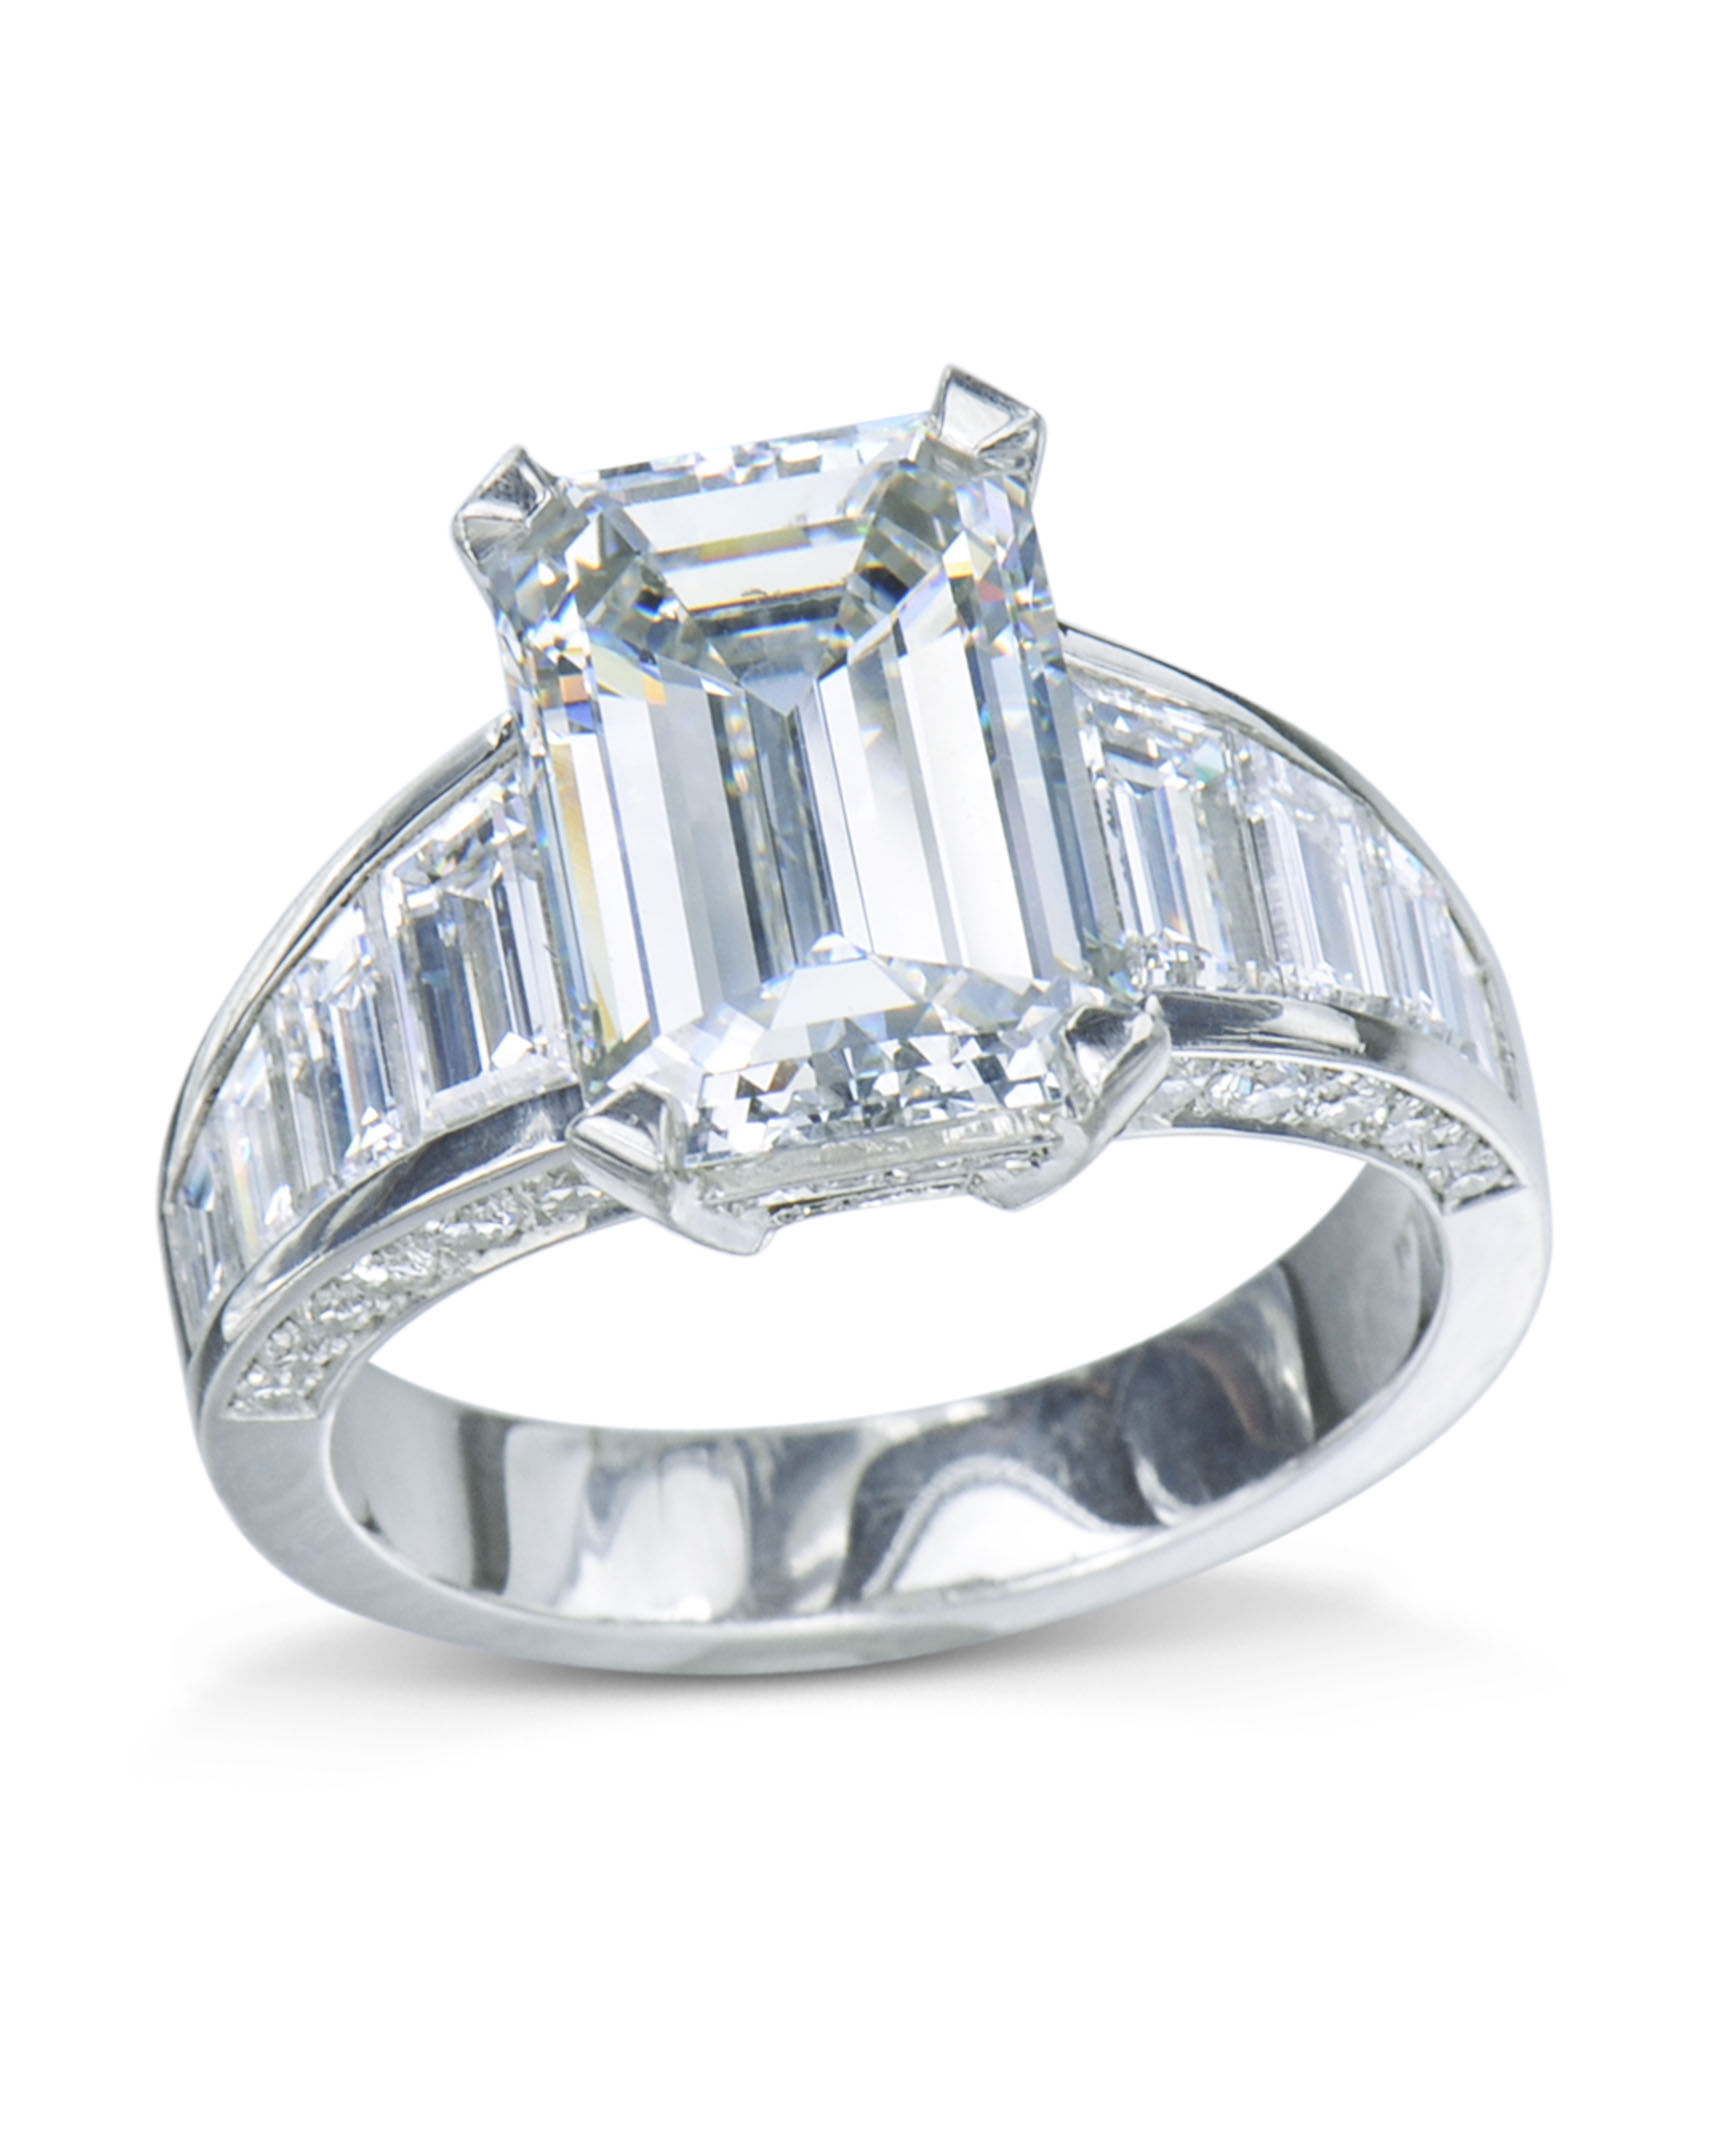 detail e ring setting engagement diamond rings index emerald inspired cut celebrity